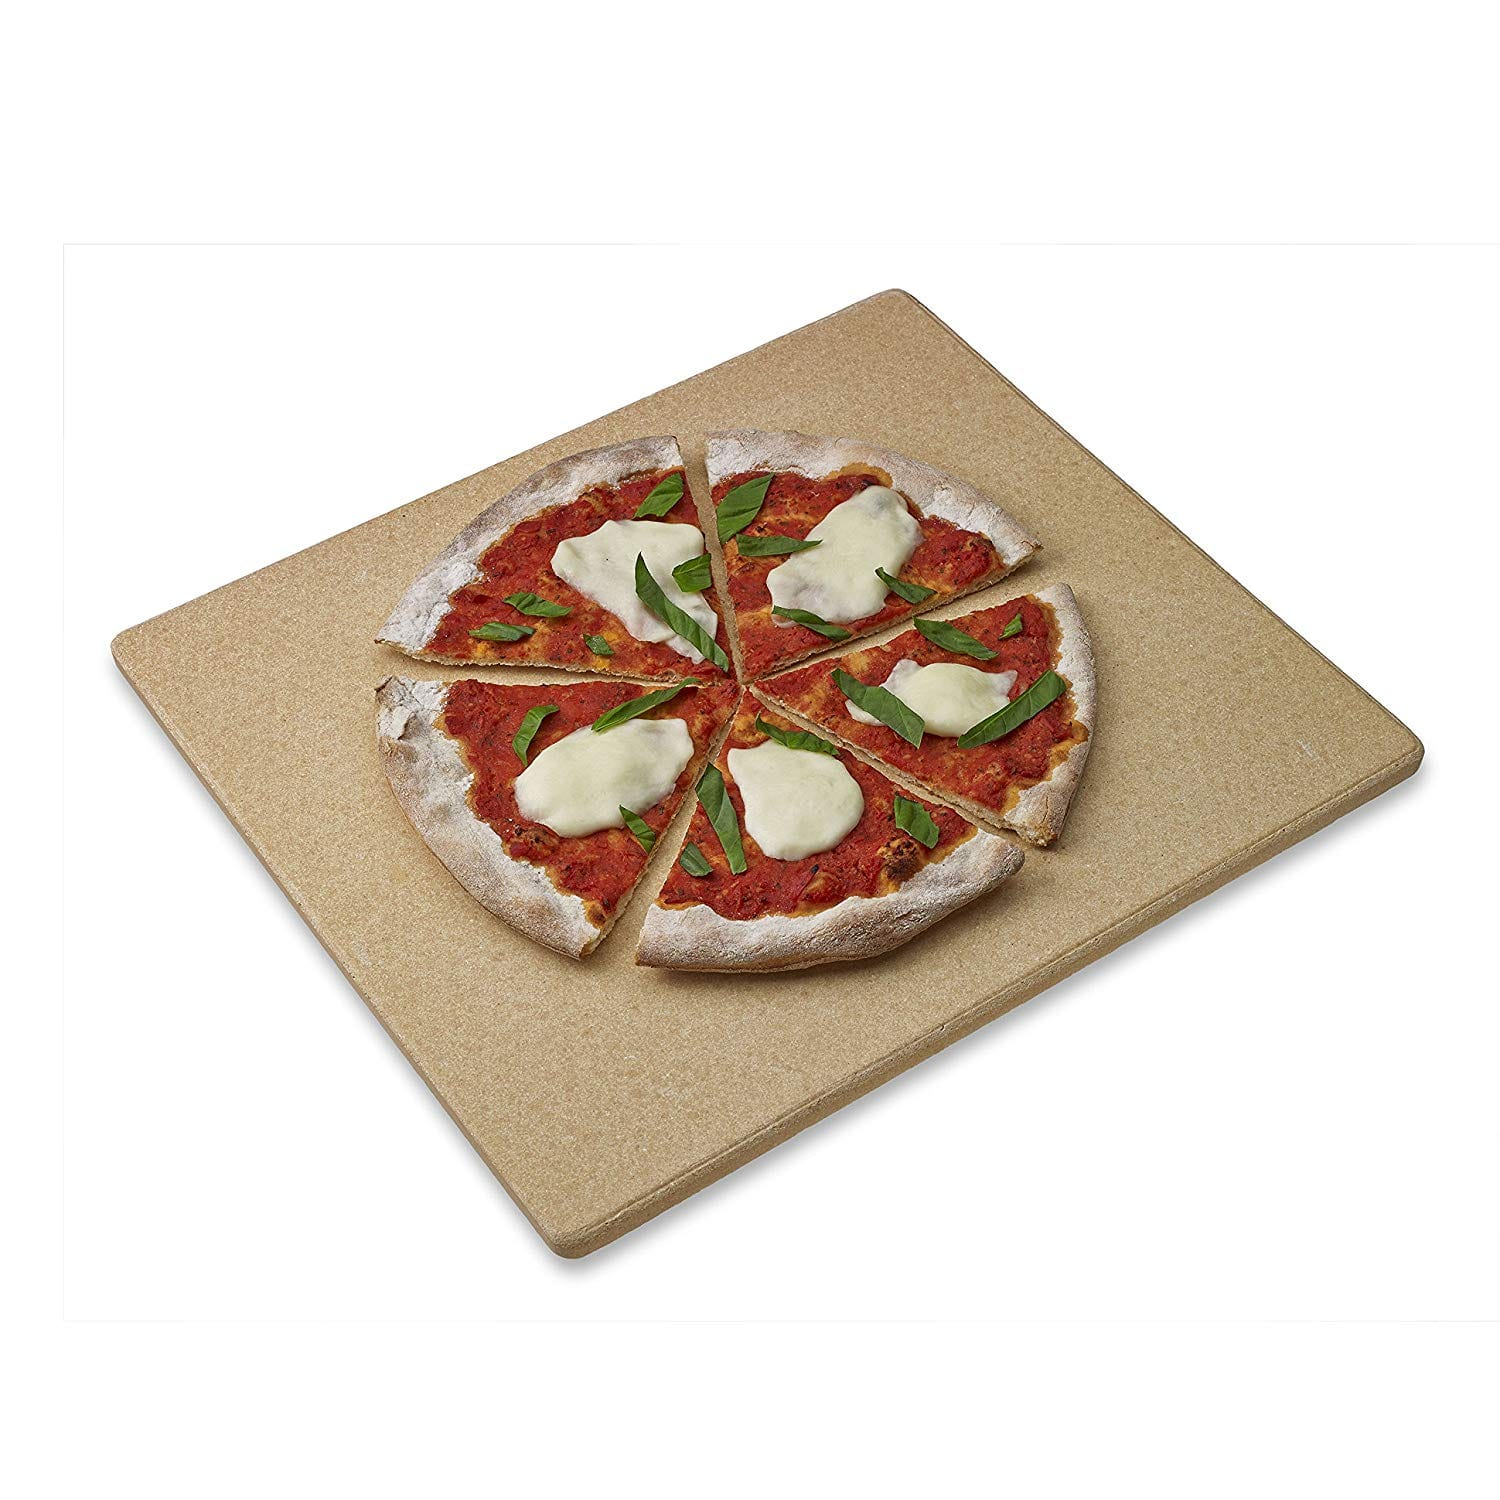 Old Stone Oven Rectangular Pizza Stone at reduced price for $14.33 (after using $2.66 coupon) @amazon